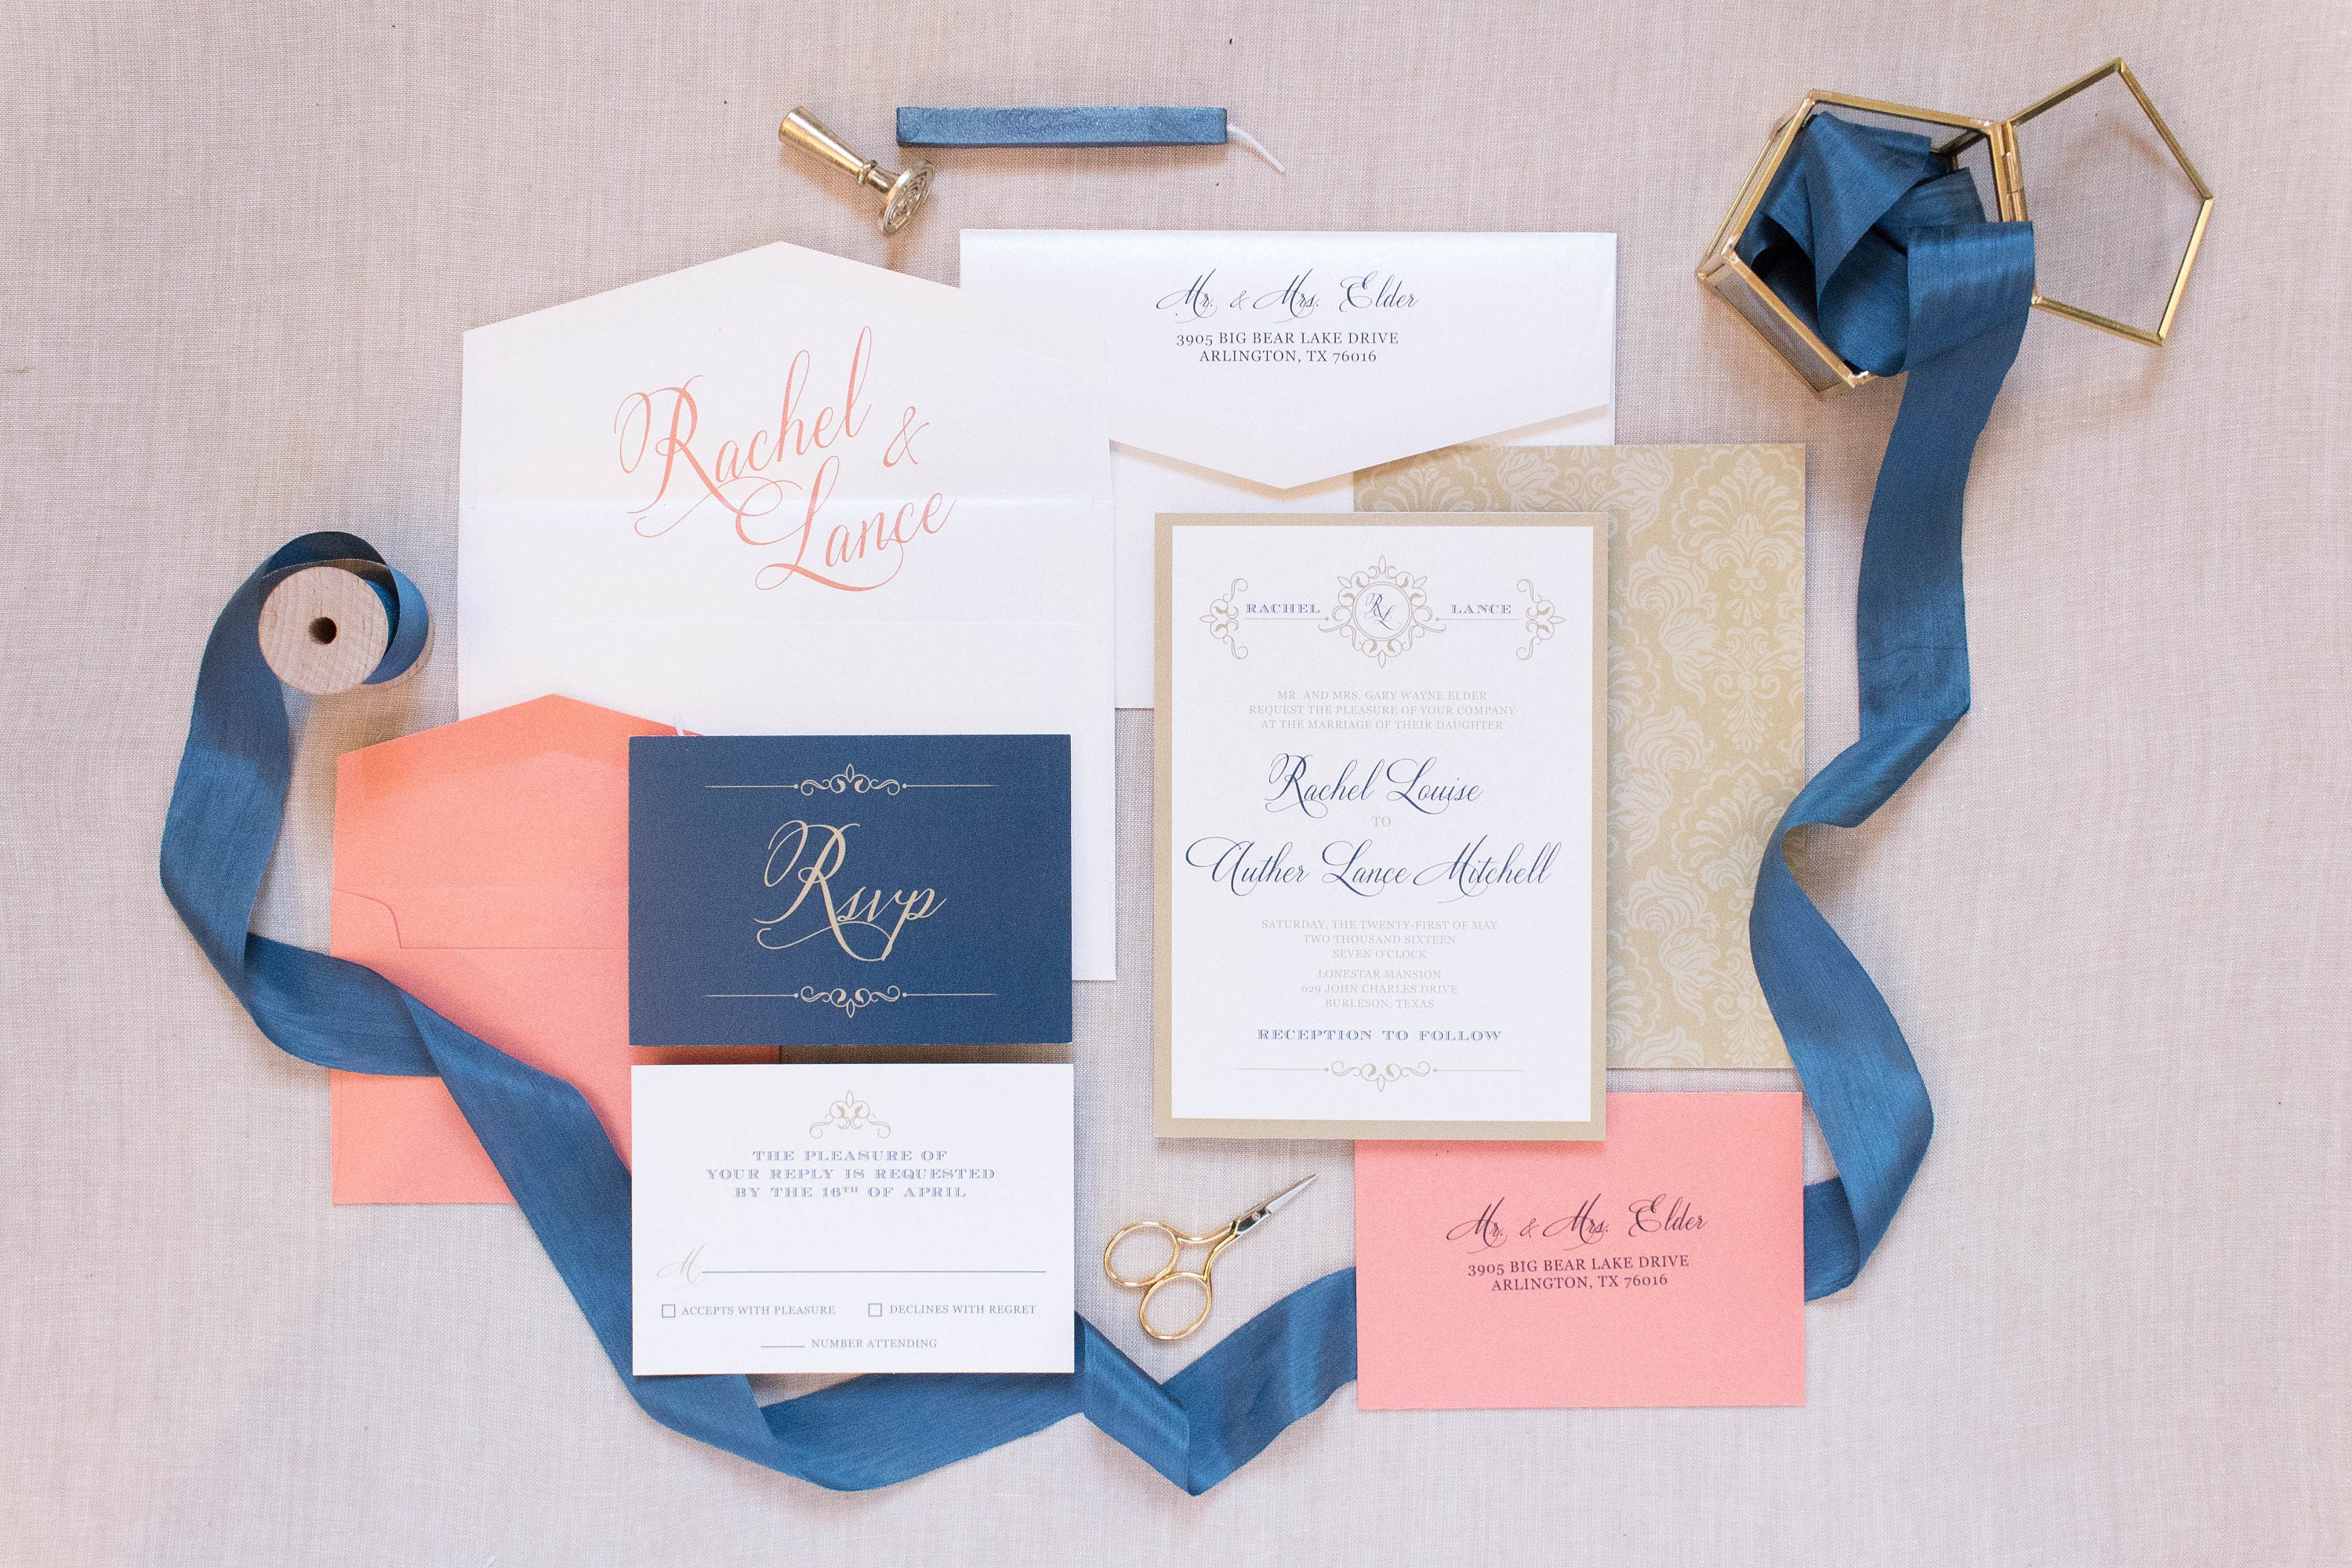 5x7 Gold White Coral U0026 Navy Wedding Invitation Suite With Details Insert,  RSVP And Envelope Liner U2014 Different Colors Available!